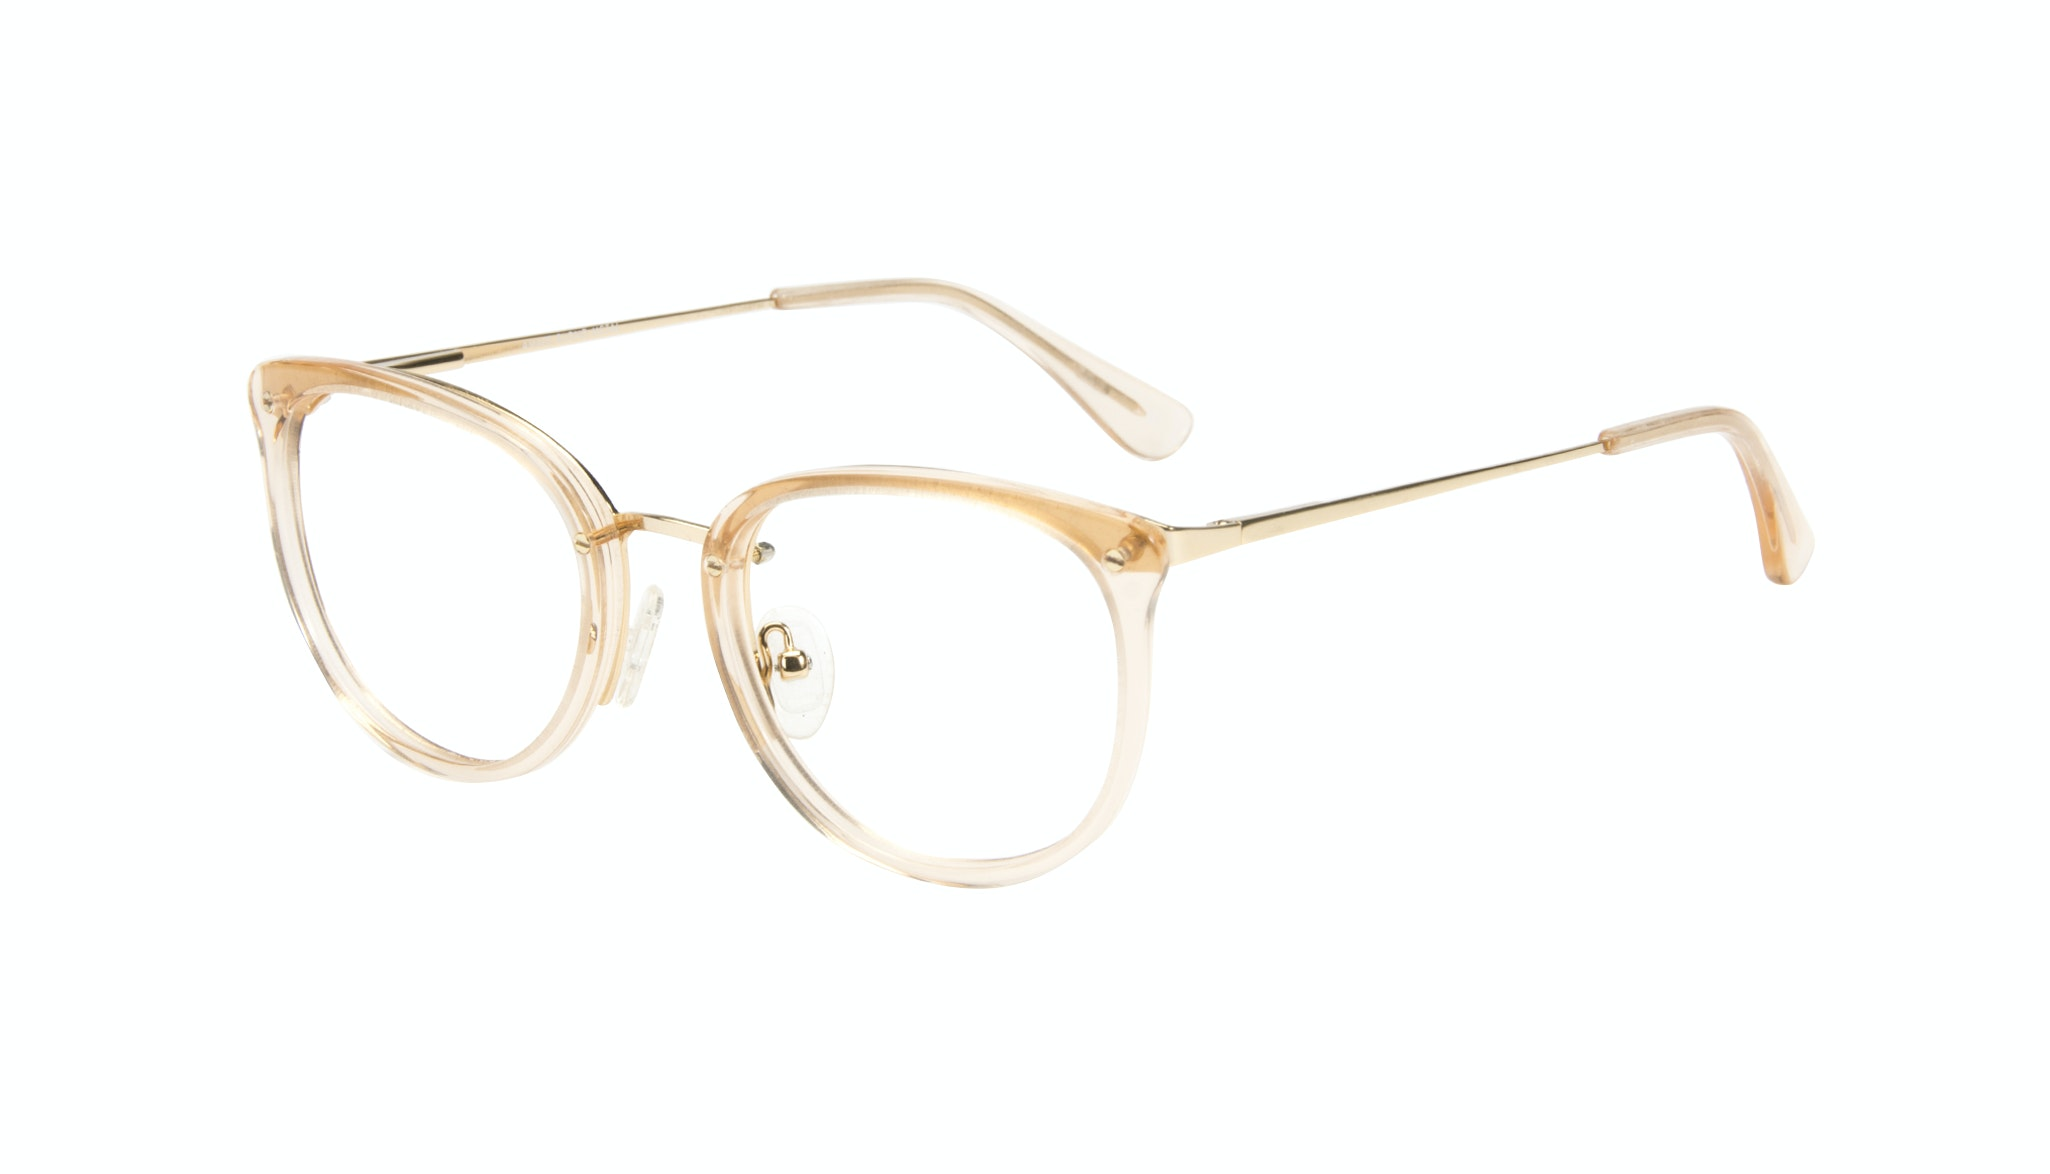 Affordable Fashion Glasses Square Round Eyeglasses Women Amaze Blond Metal Tilt